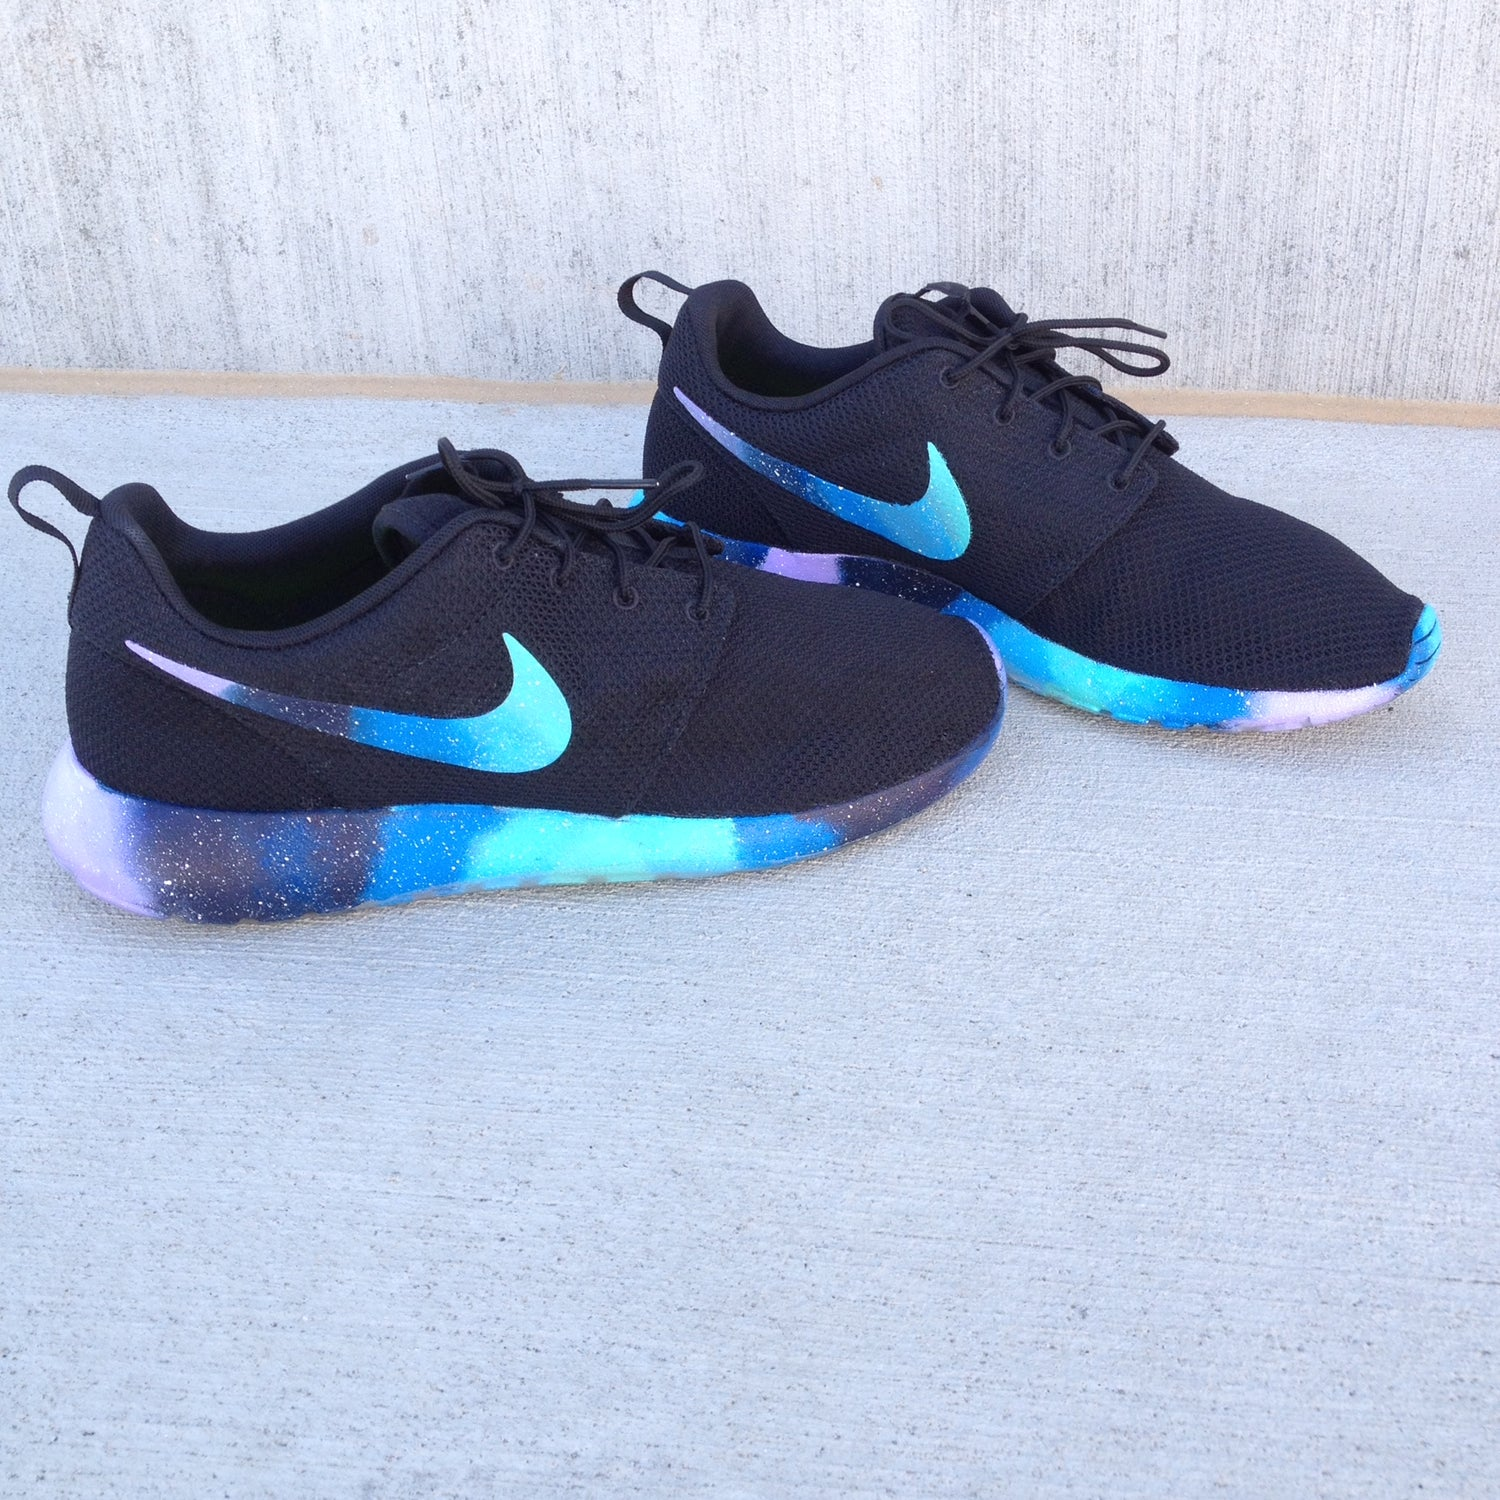 a69d2bc6fb7e4 Image of Custom Nike Roshe One